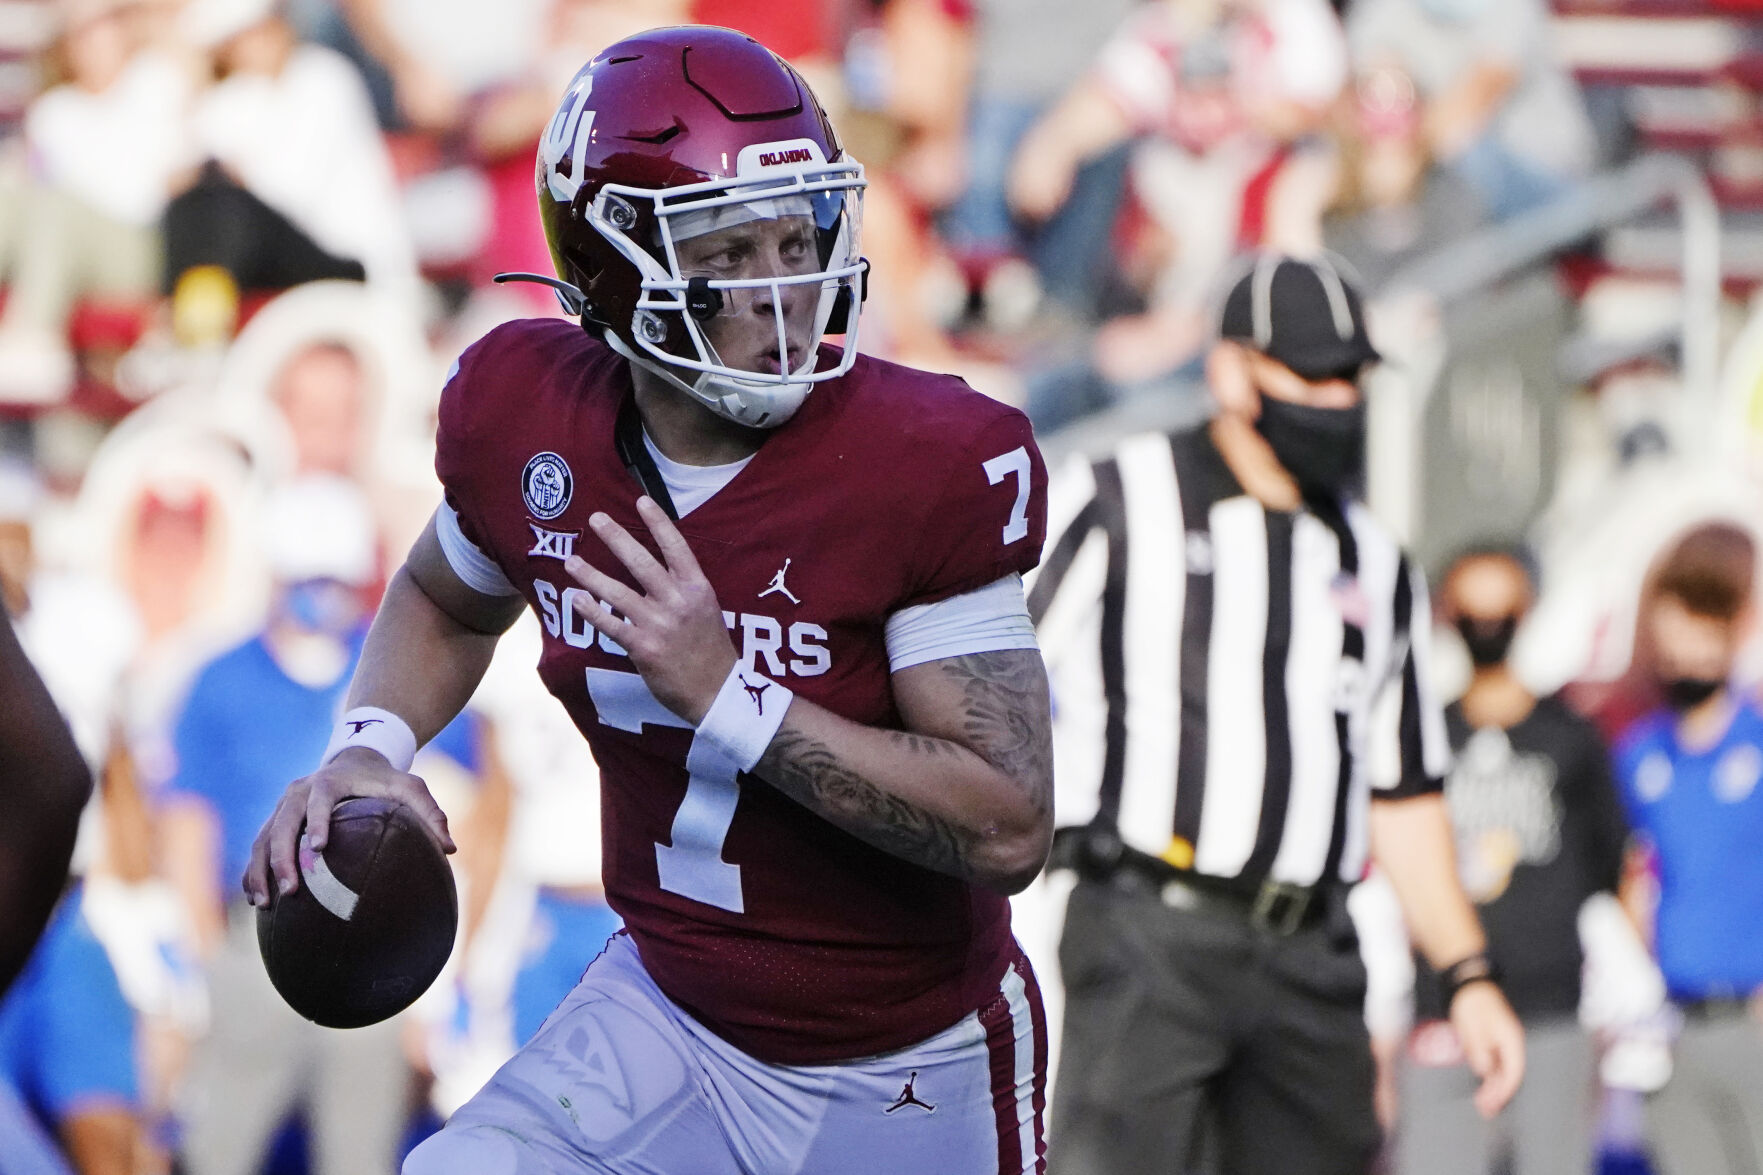 OU football: Baylor coach impressed with Sooners' seamless ...